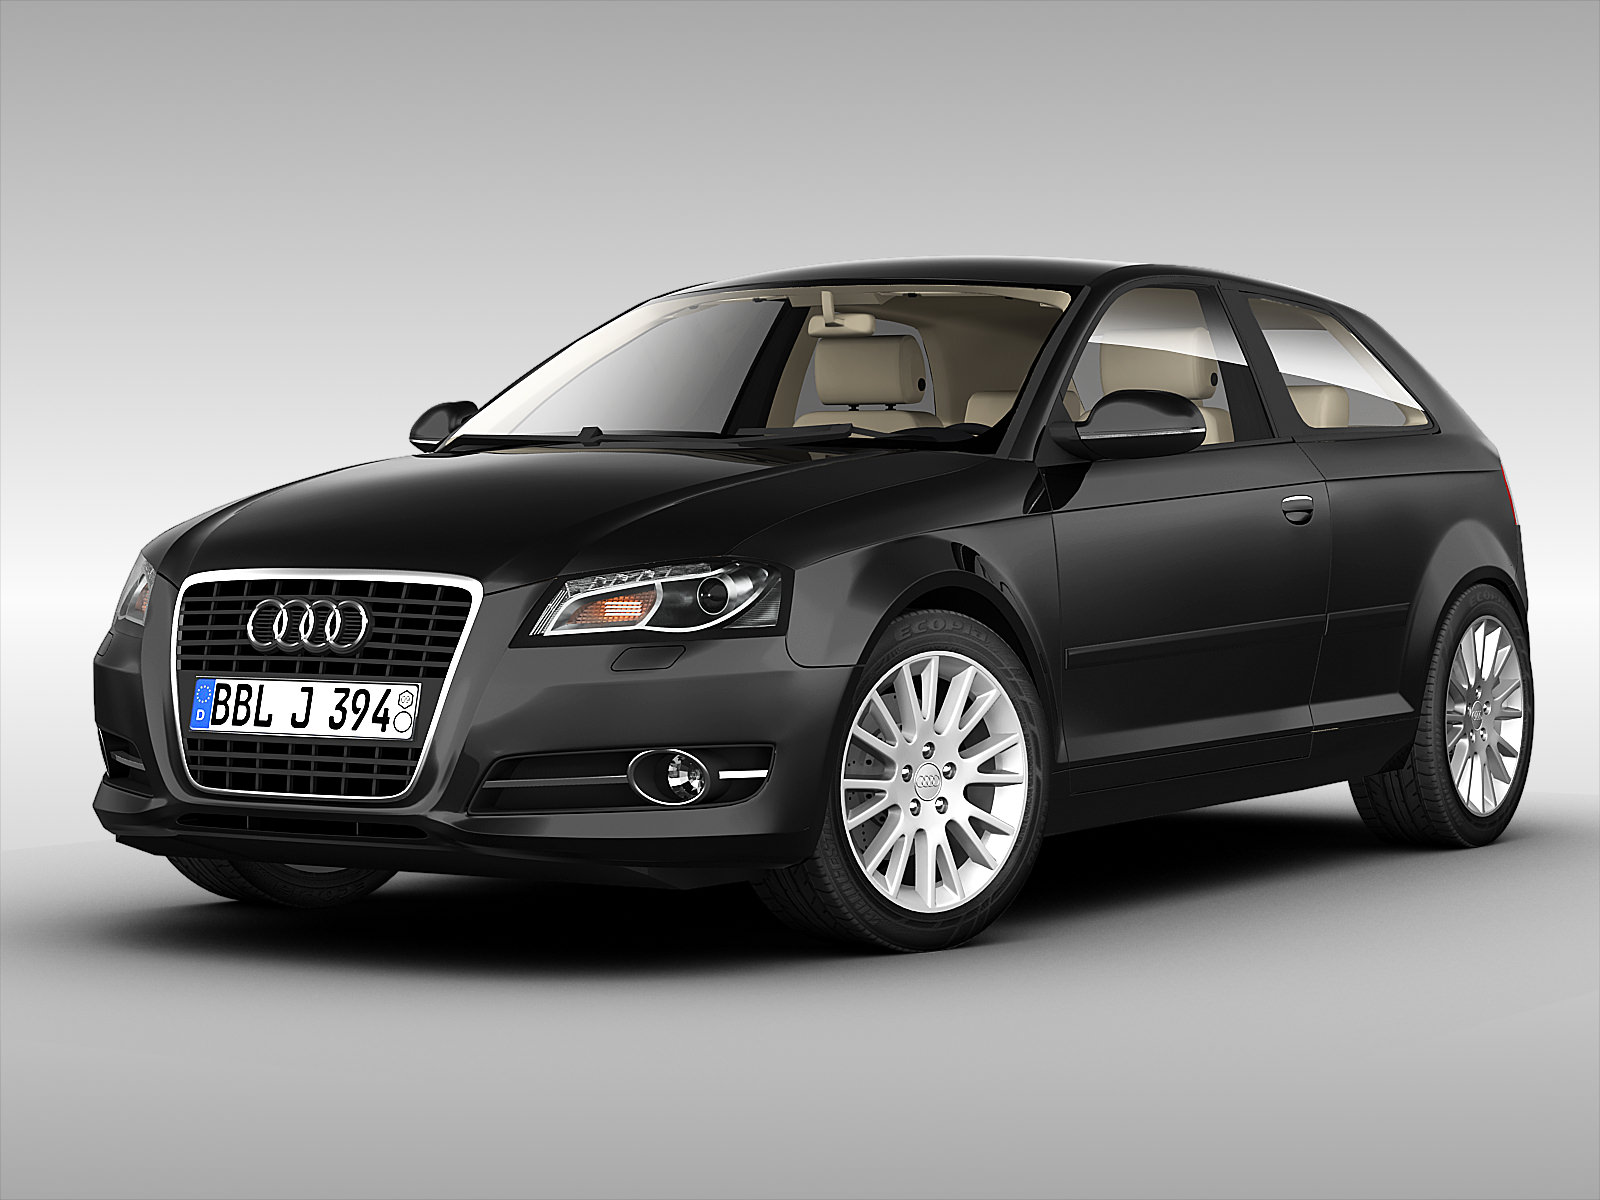 audi a3 2011 3d model max obj 3ds fbx. Black Bedroom Furniture Sets. Home Design Ideas